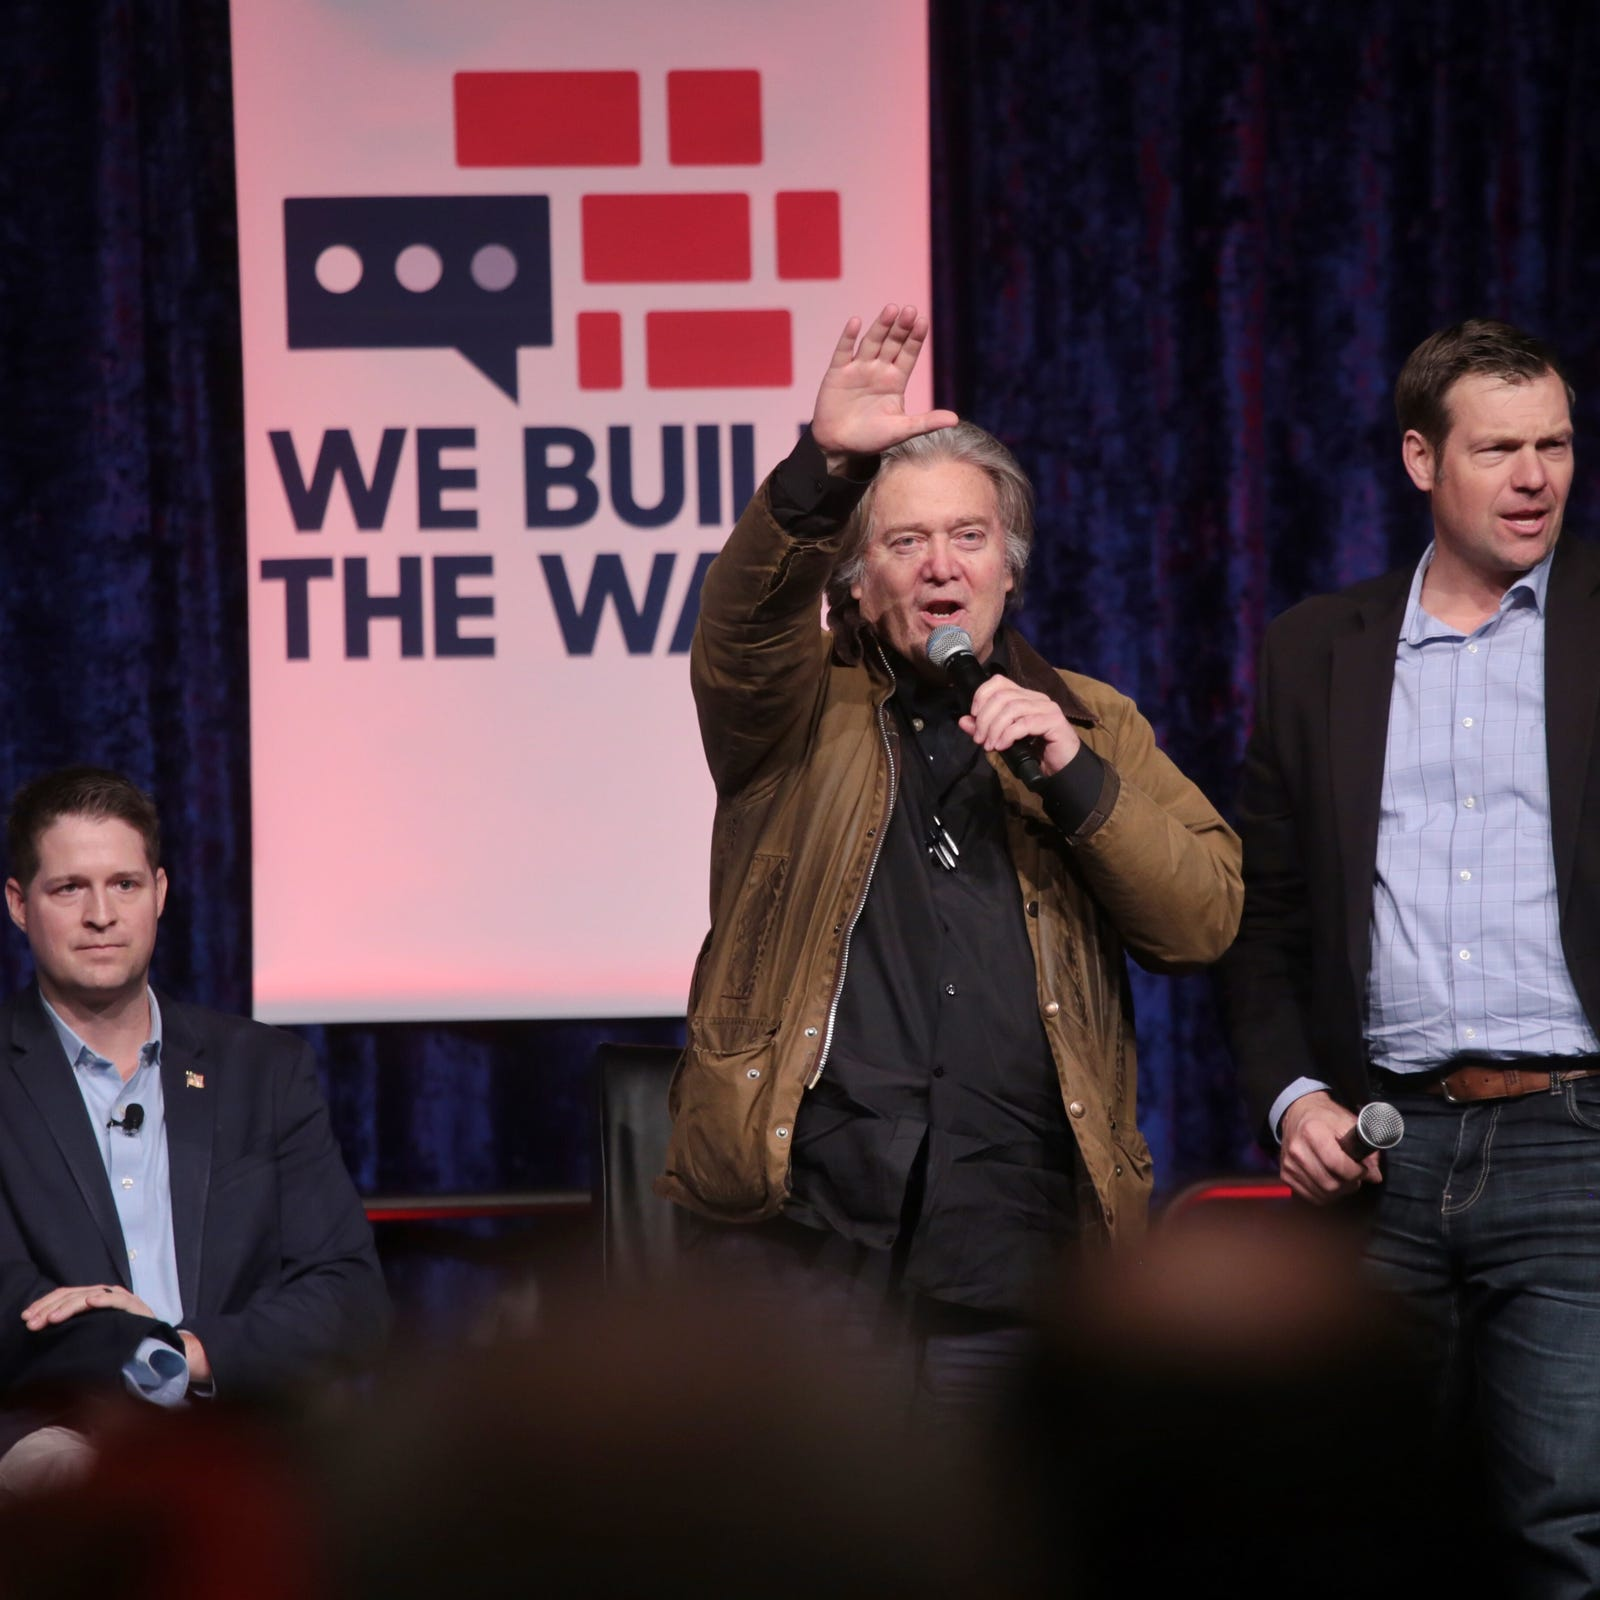 Steve Bannon, 'Build the Wall' fans rally at Cobo Center in Detroit